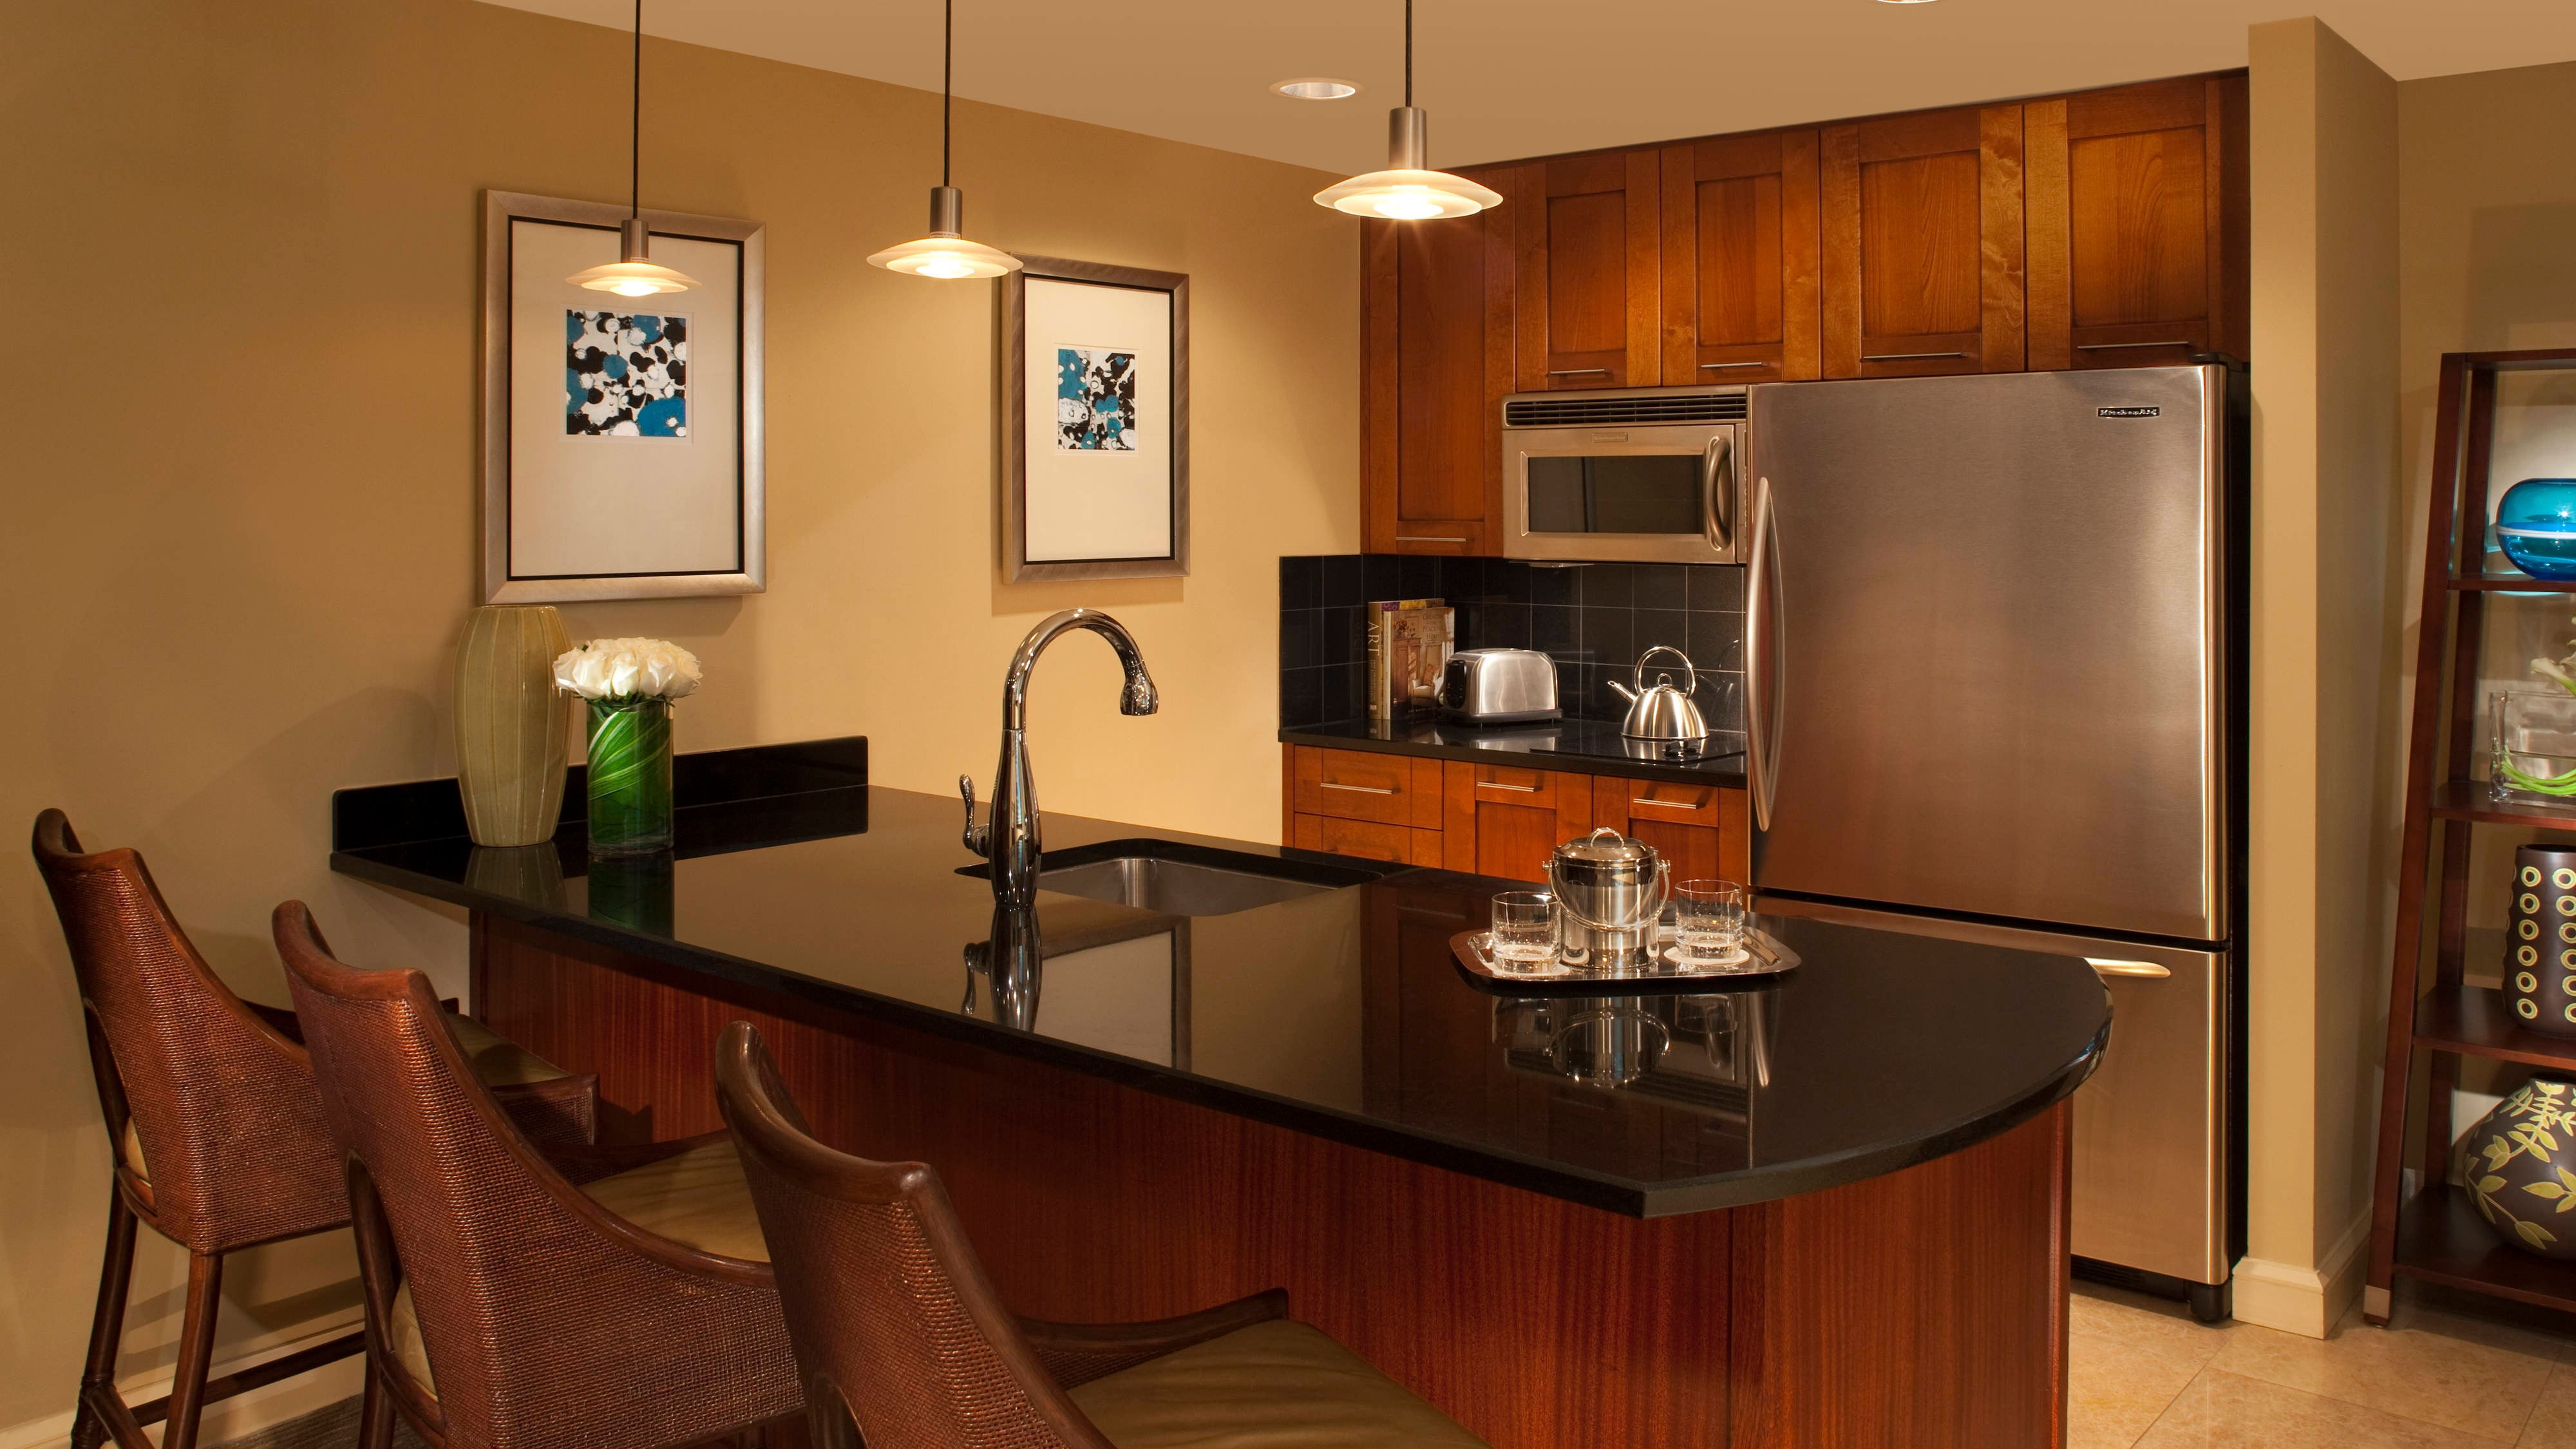 Singer Island Marriott Kitchen